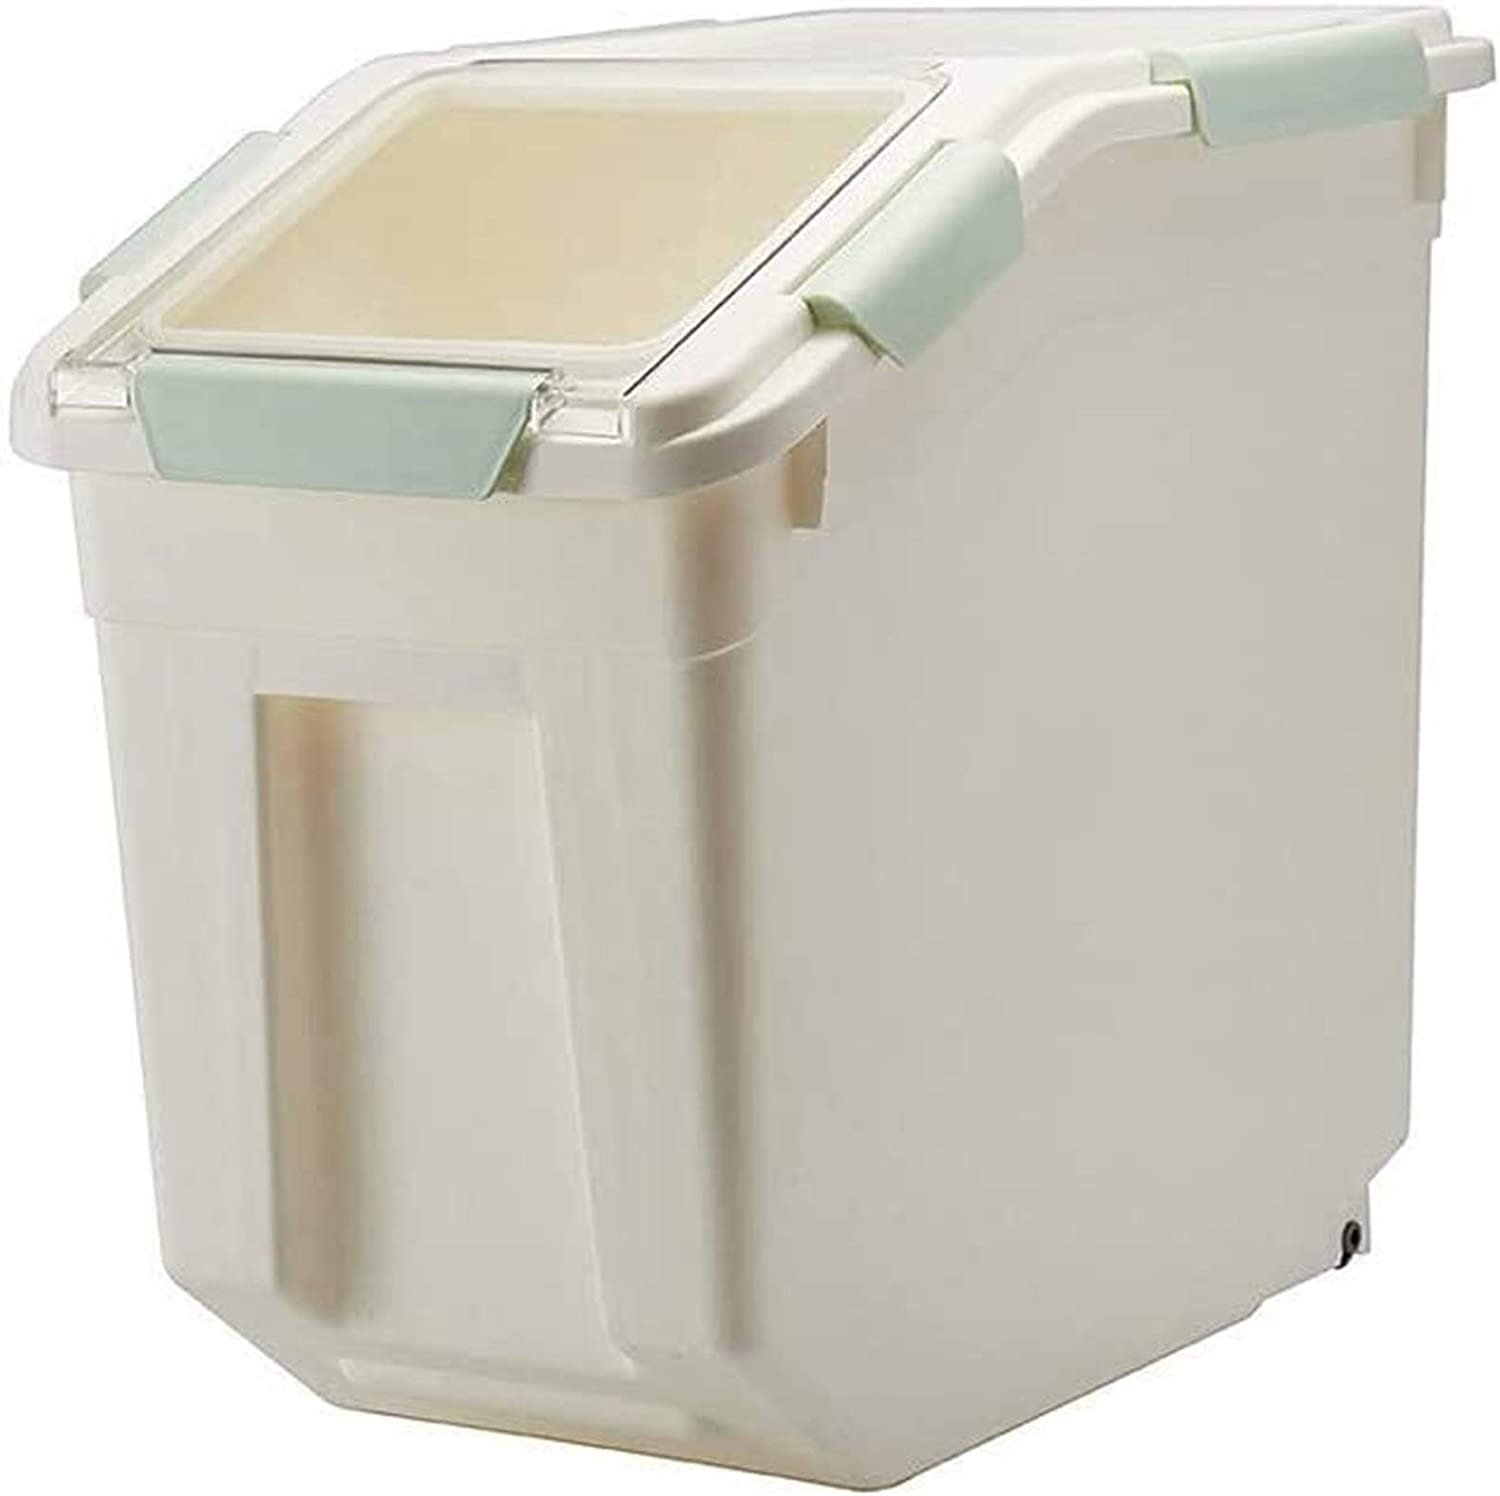 Grain container 15kg Large Kitchen Container Special sale item Today's only Stor Food Rice